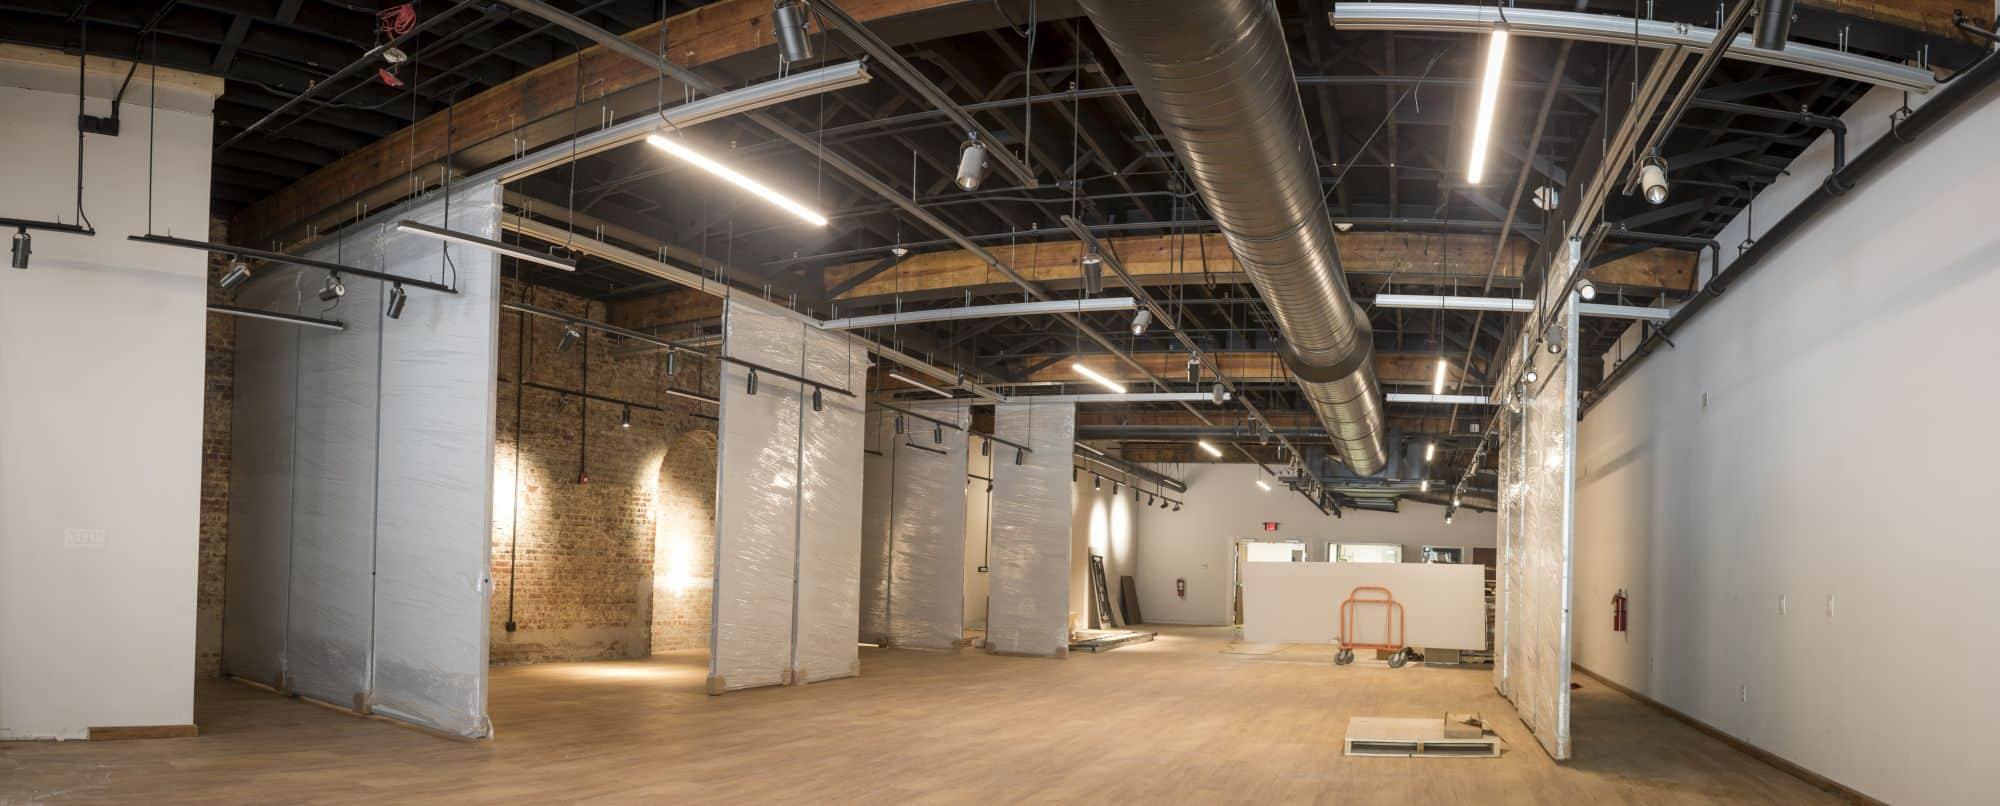 University Place Gallery Moving In